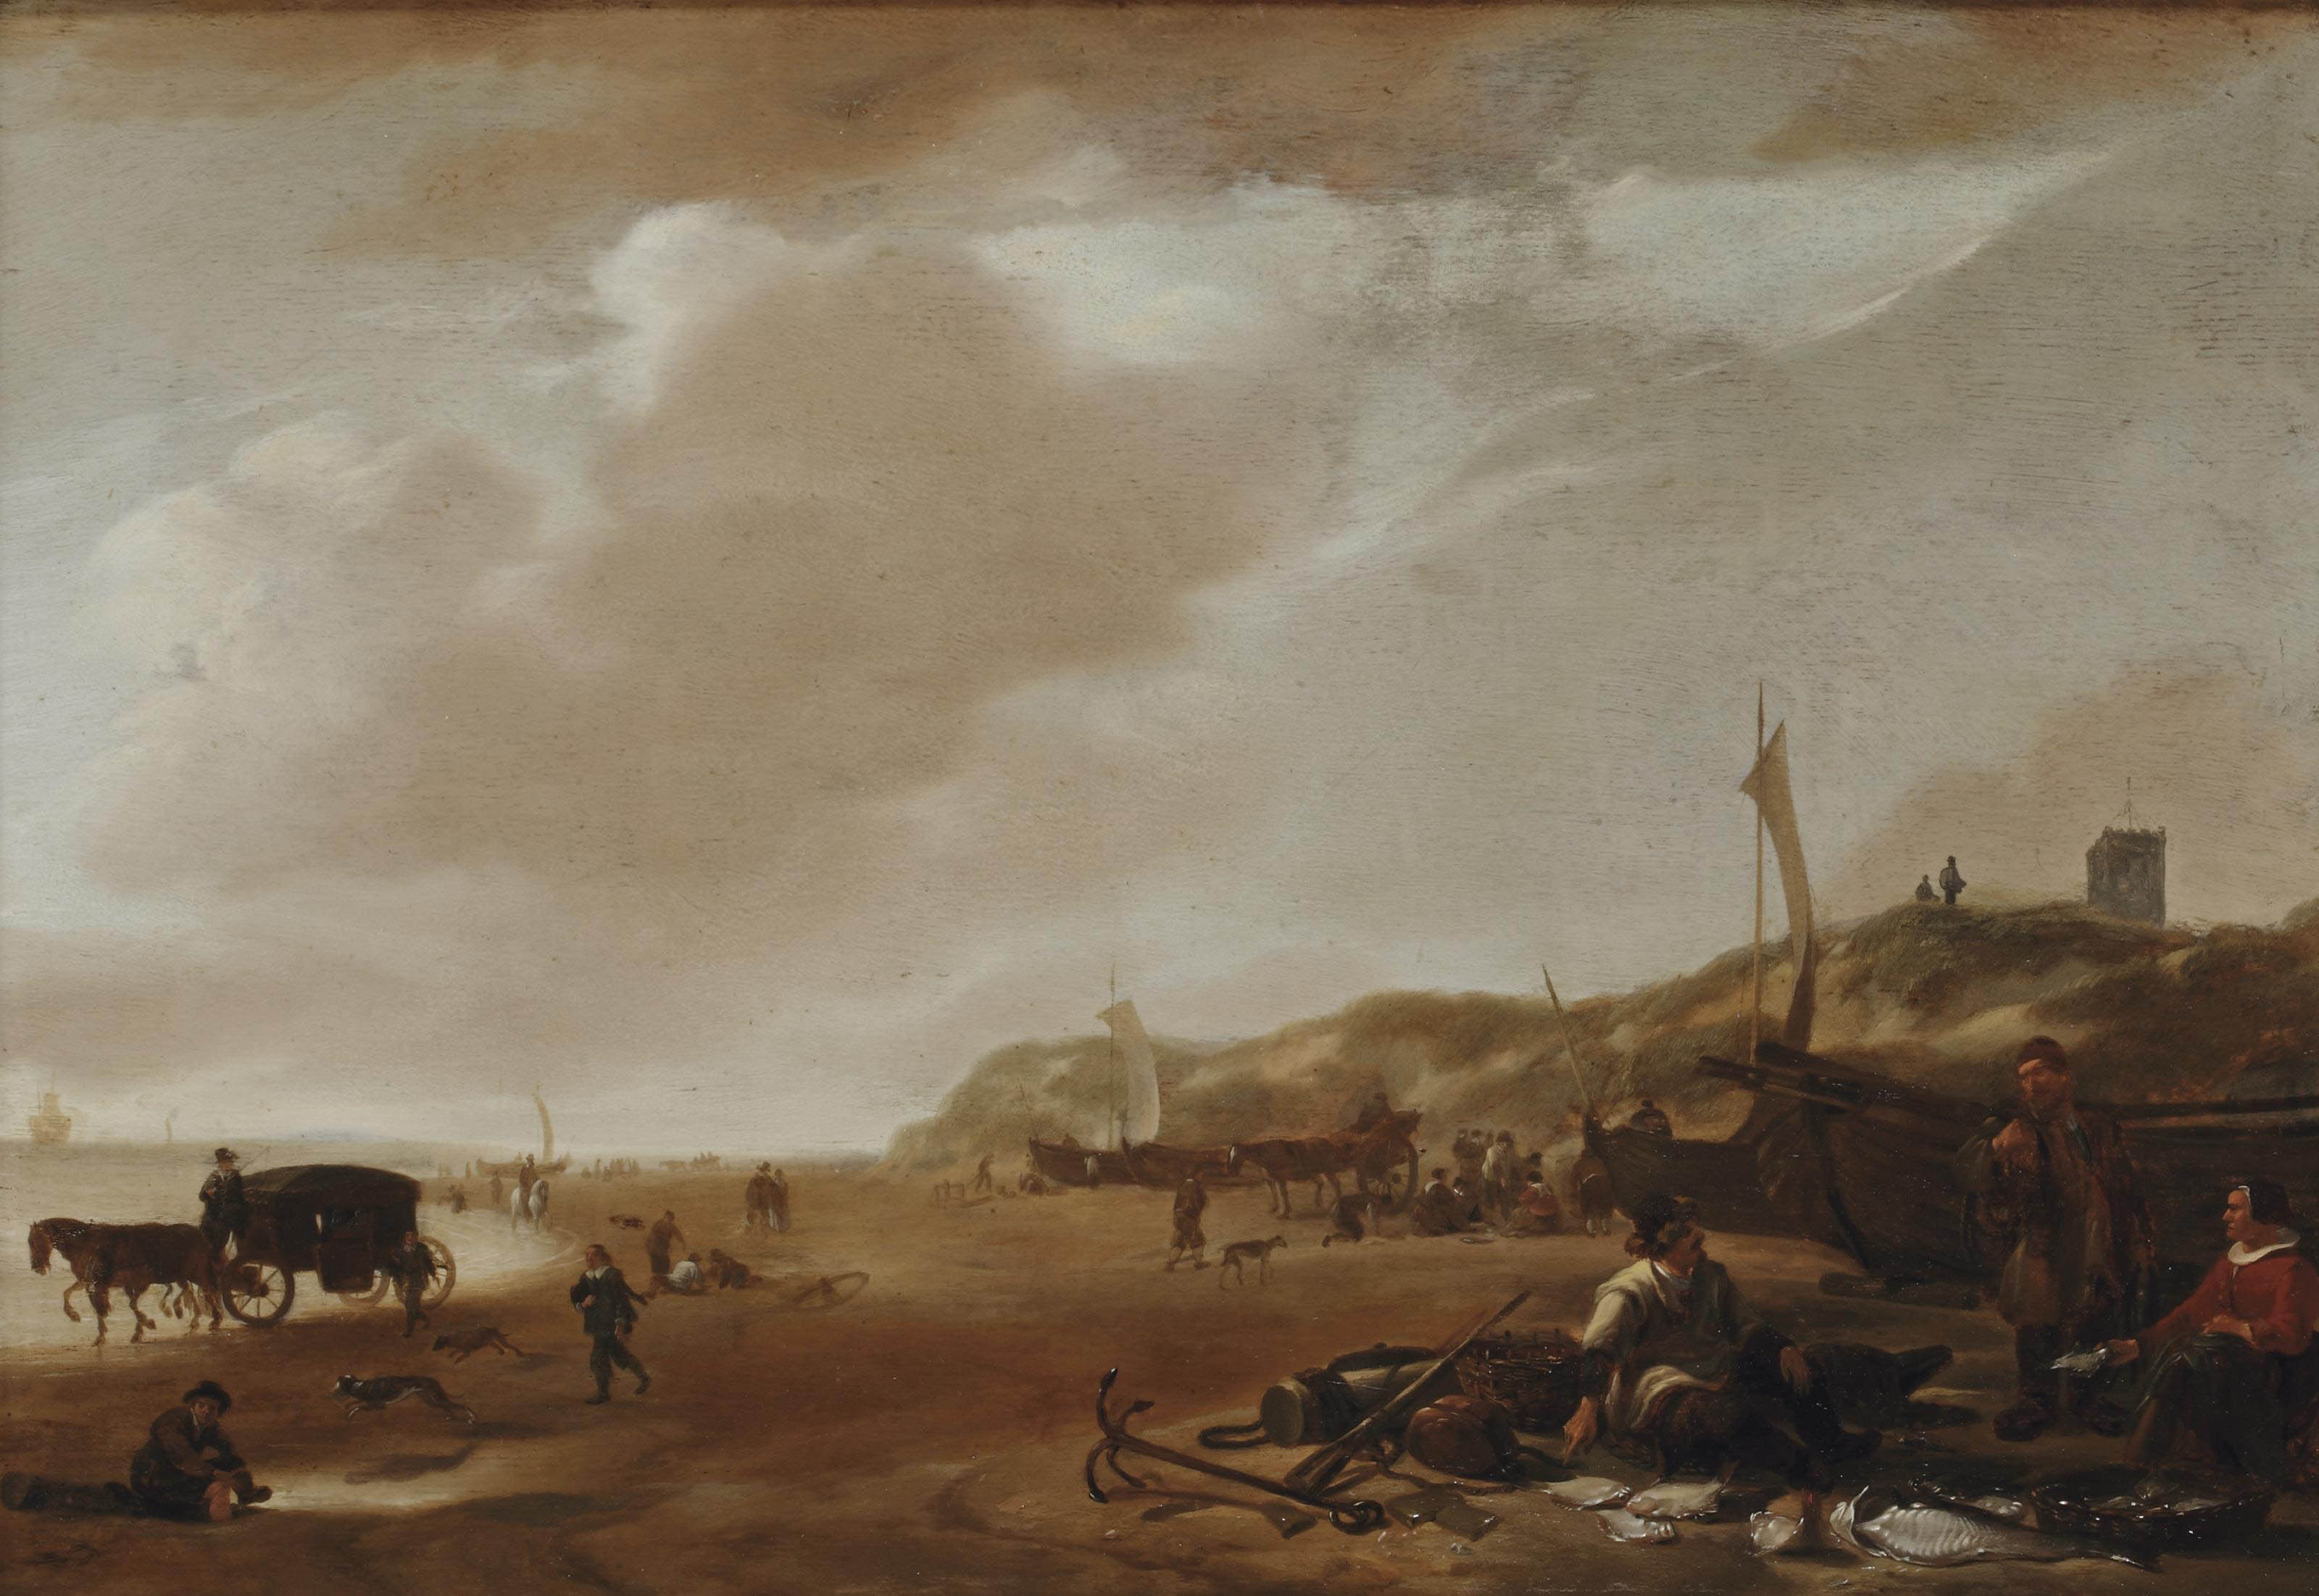 Figures on the beach of Egmond aan Zee, a lady selling fish